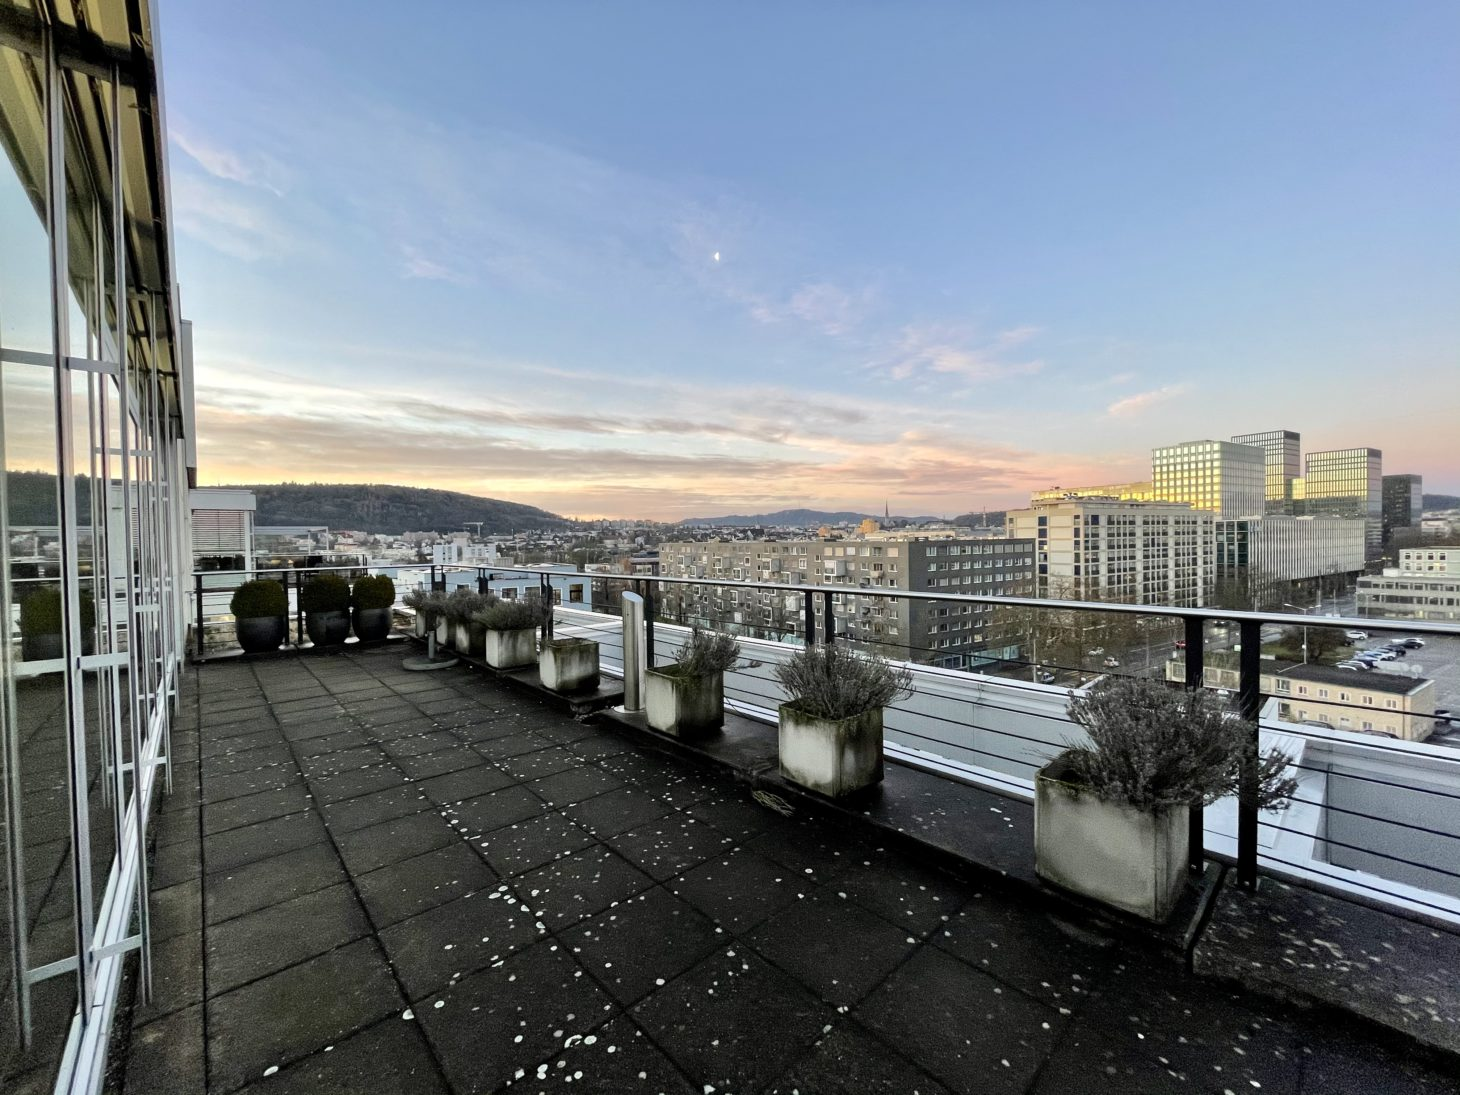 Image of the roof terrace of the valantic branch in Zurich